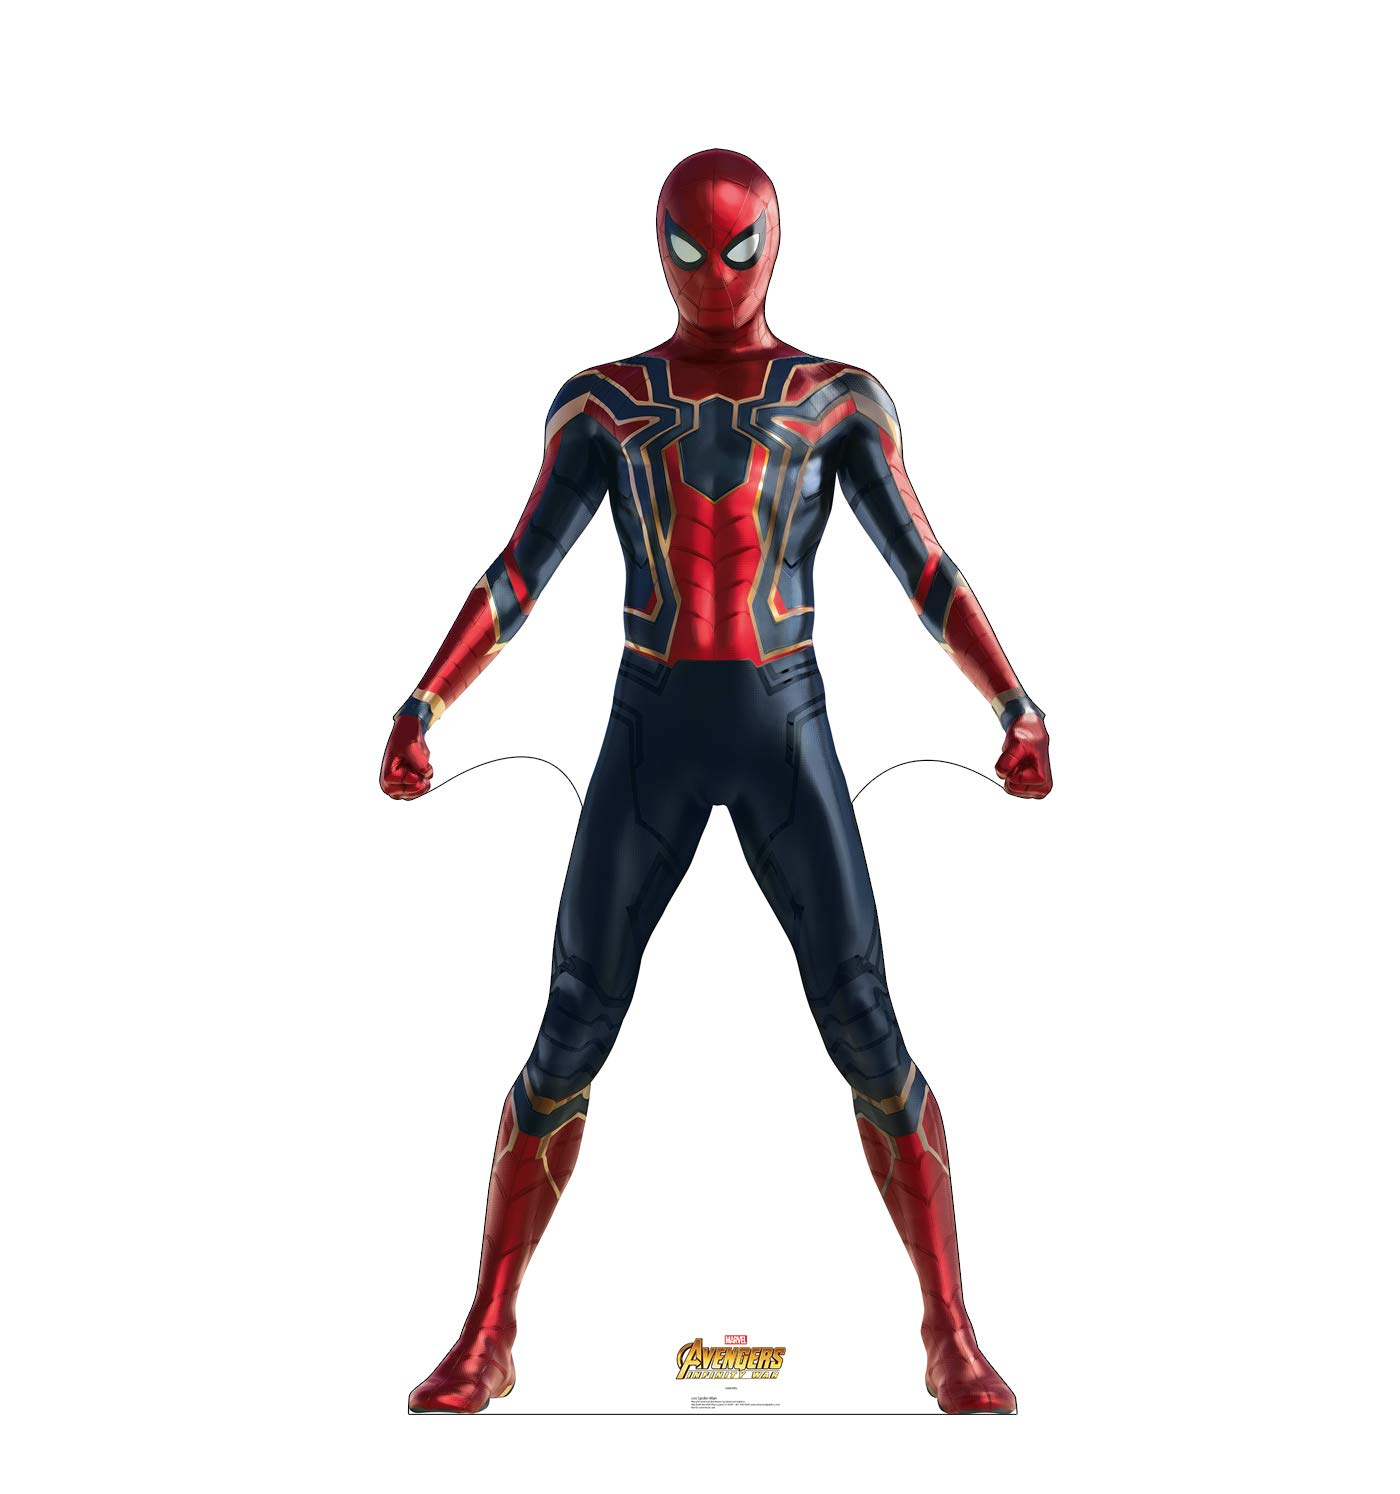 Advanced Graphics Spider-Man Life Size Cardboard Cutout Standup - Marvel's Avengers: Infinity War (2018 Film)